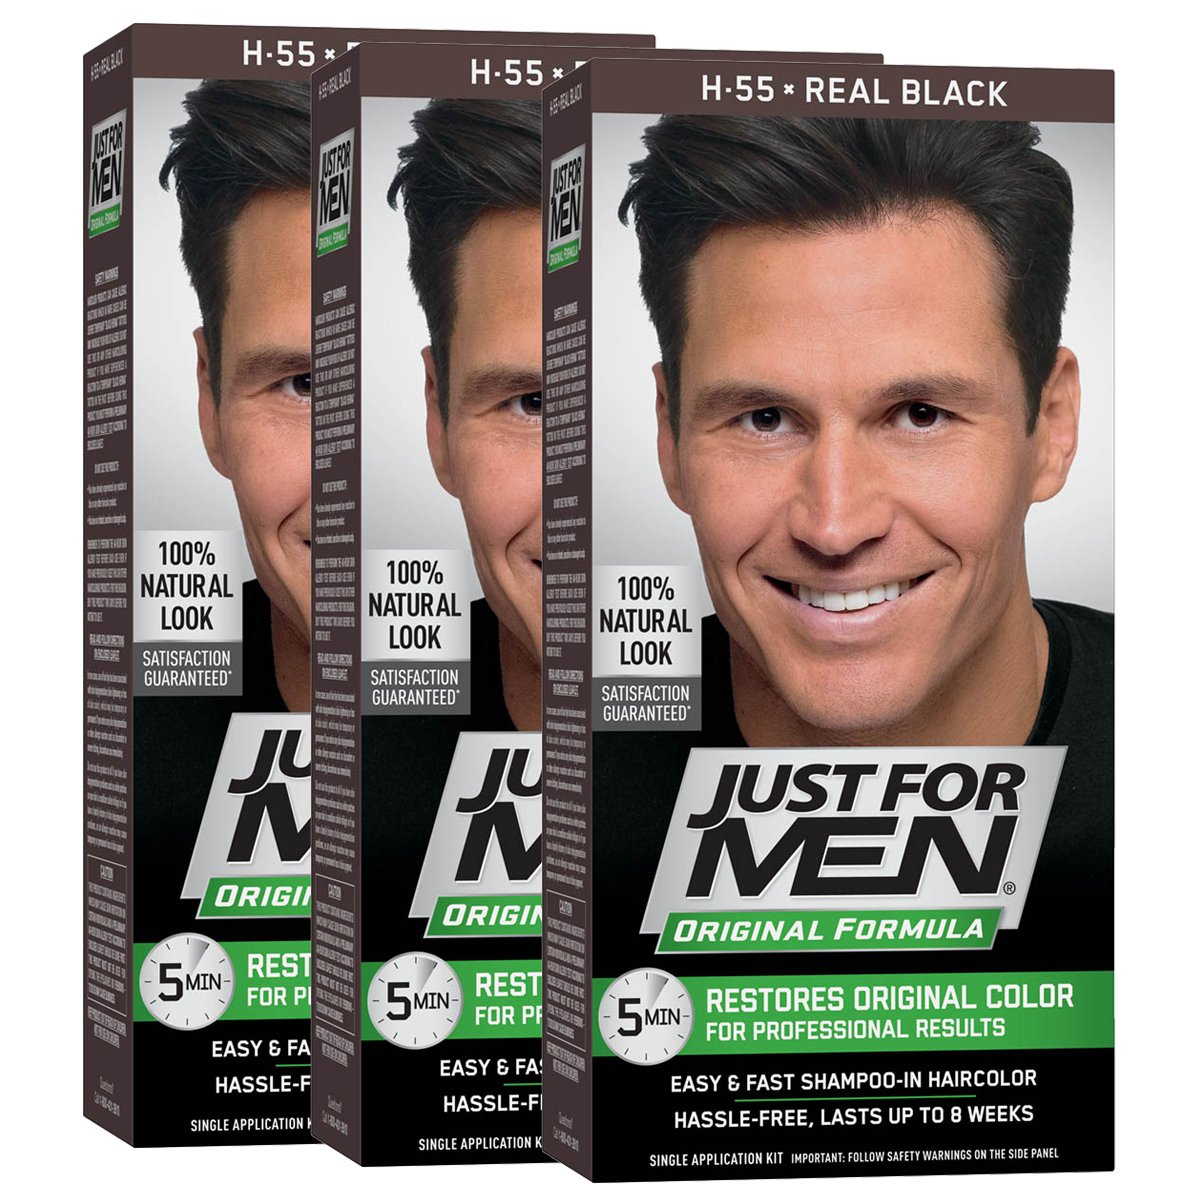 Amazon.com : Just For Men Original Formula Men\'s Hair Color, Real ...